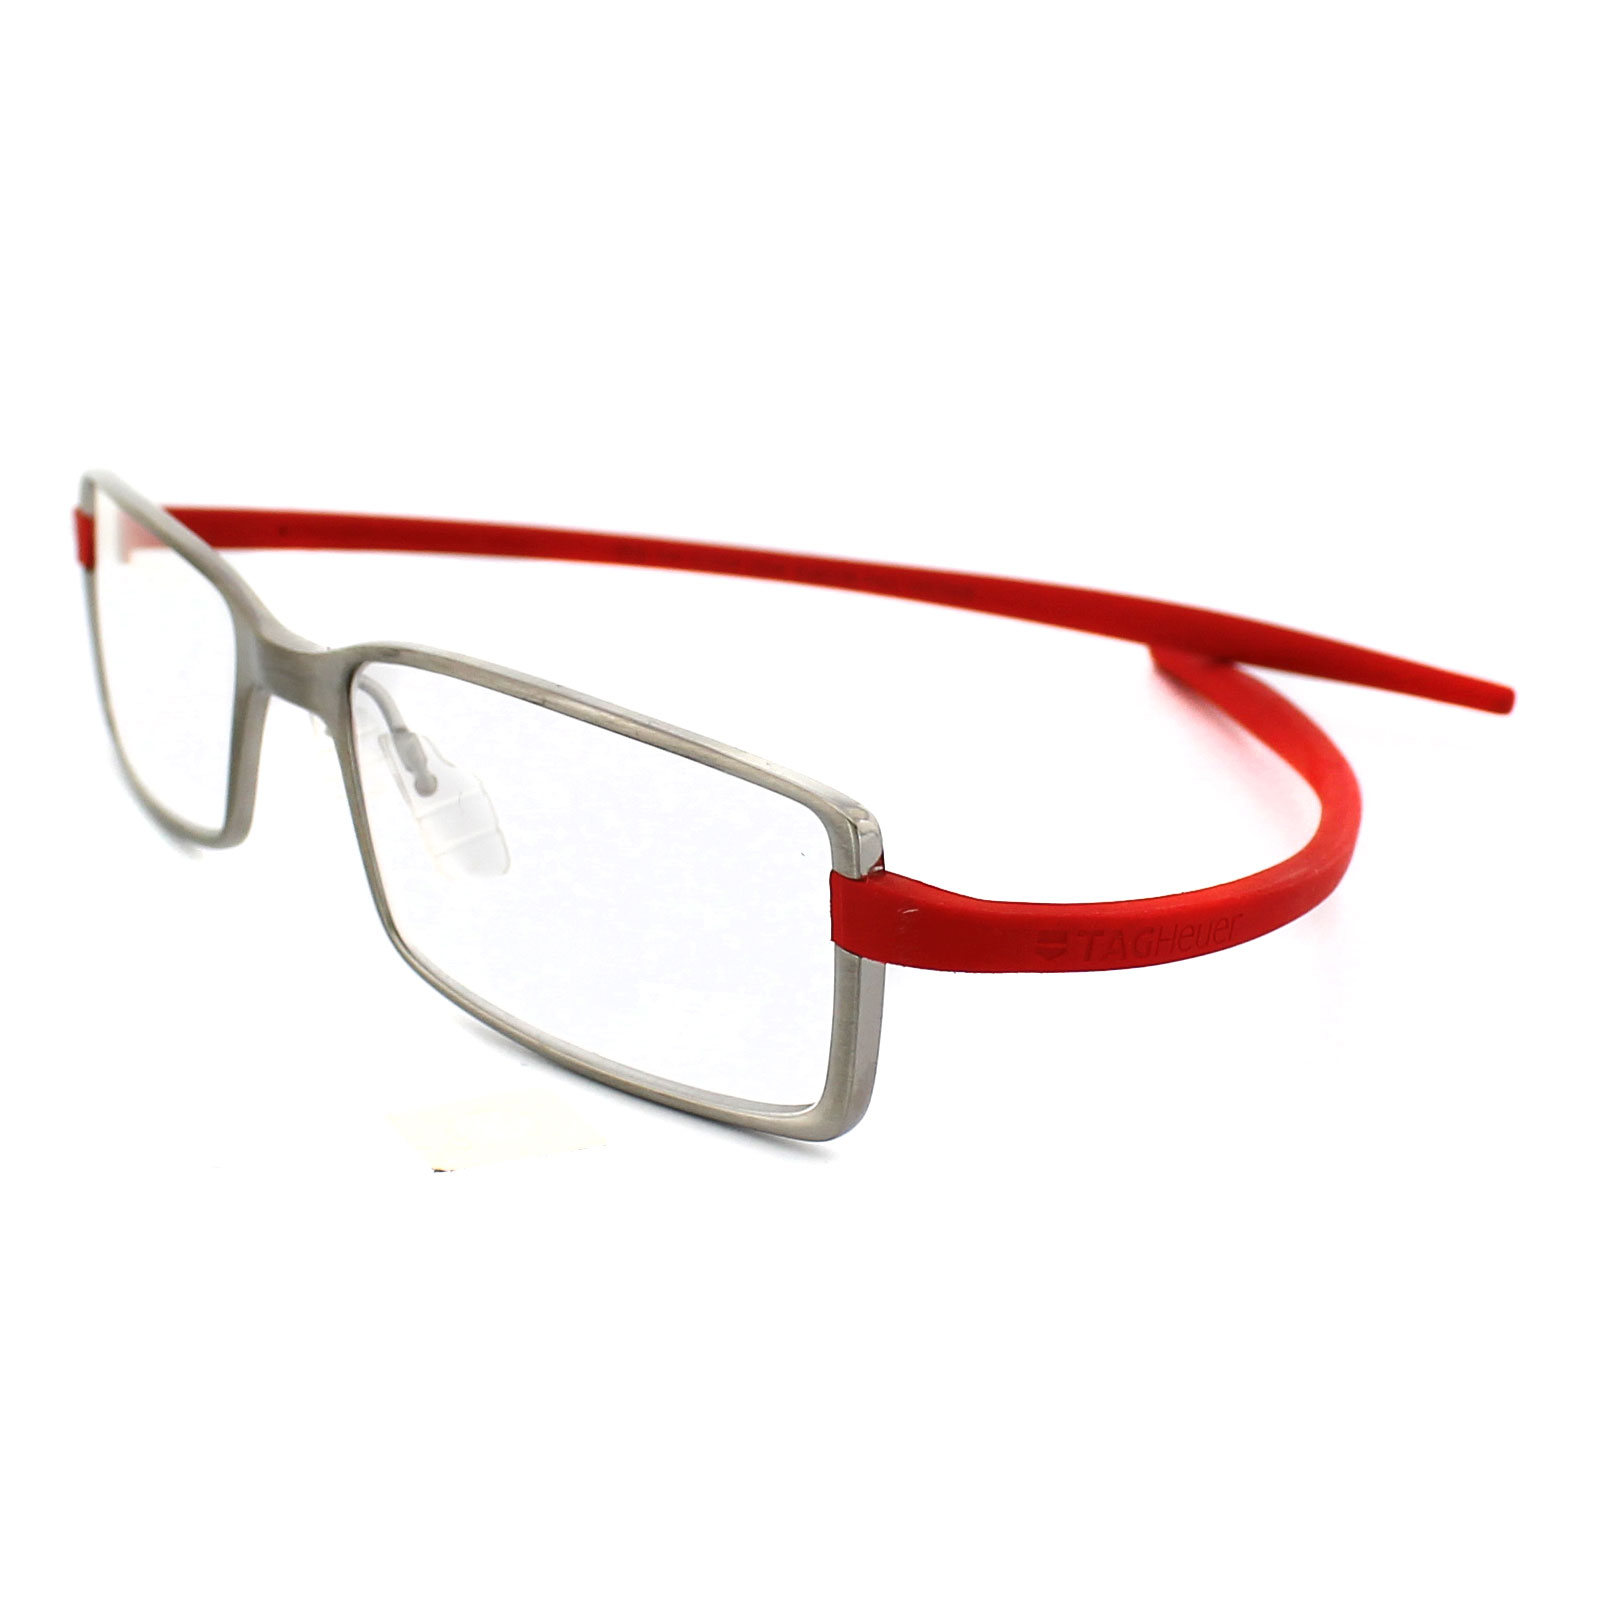 Tag Heuer Glasses Frames Reflex 2 3703 004 Pure Frame Red Temples | eBay